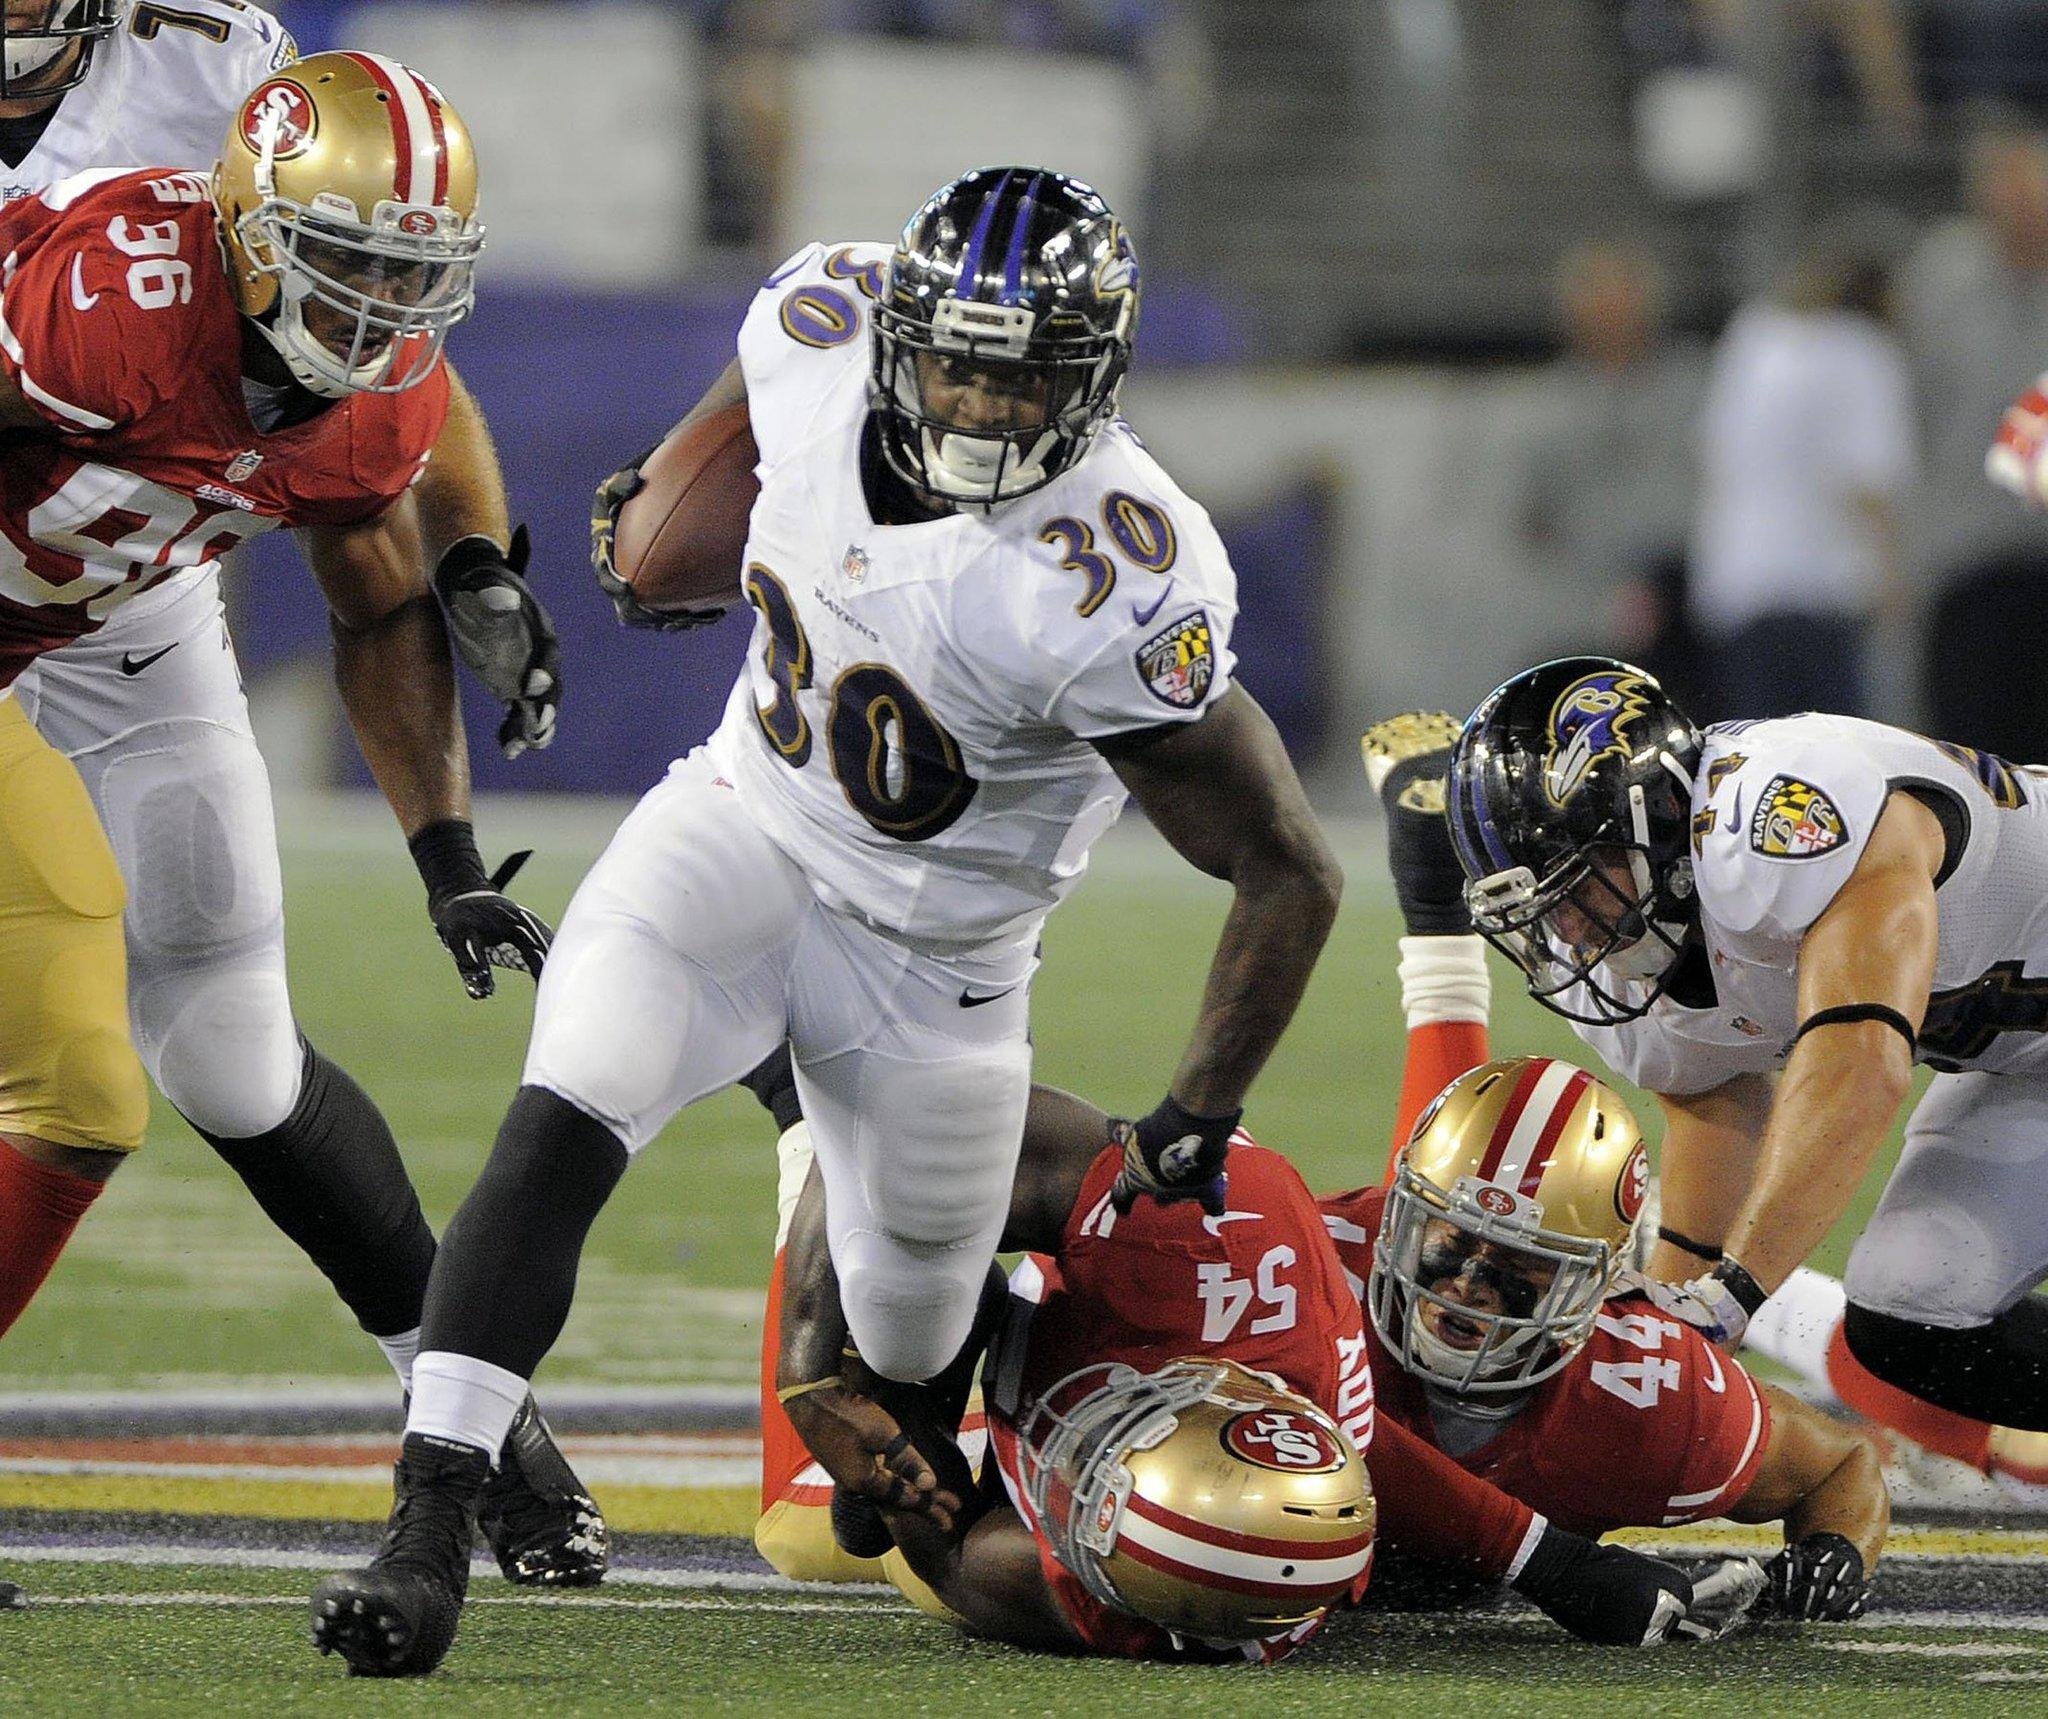 Ravens running back Bernard Pierce breaks through San Francisco 49ers' defense for a first down in the second quarter during preseason action at M & T Bank Stadium.